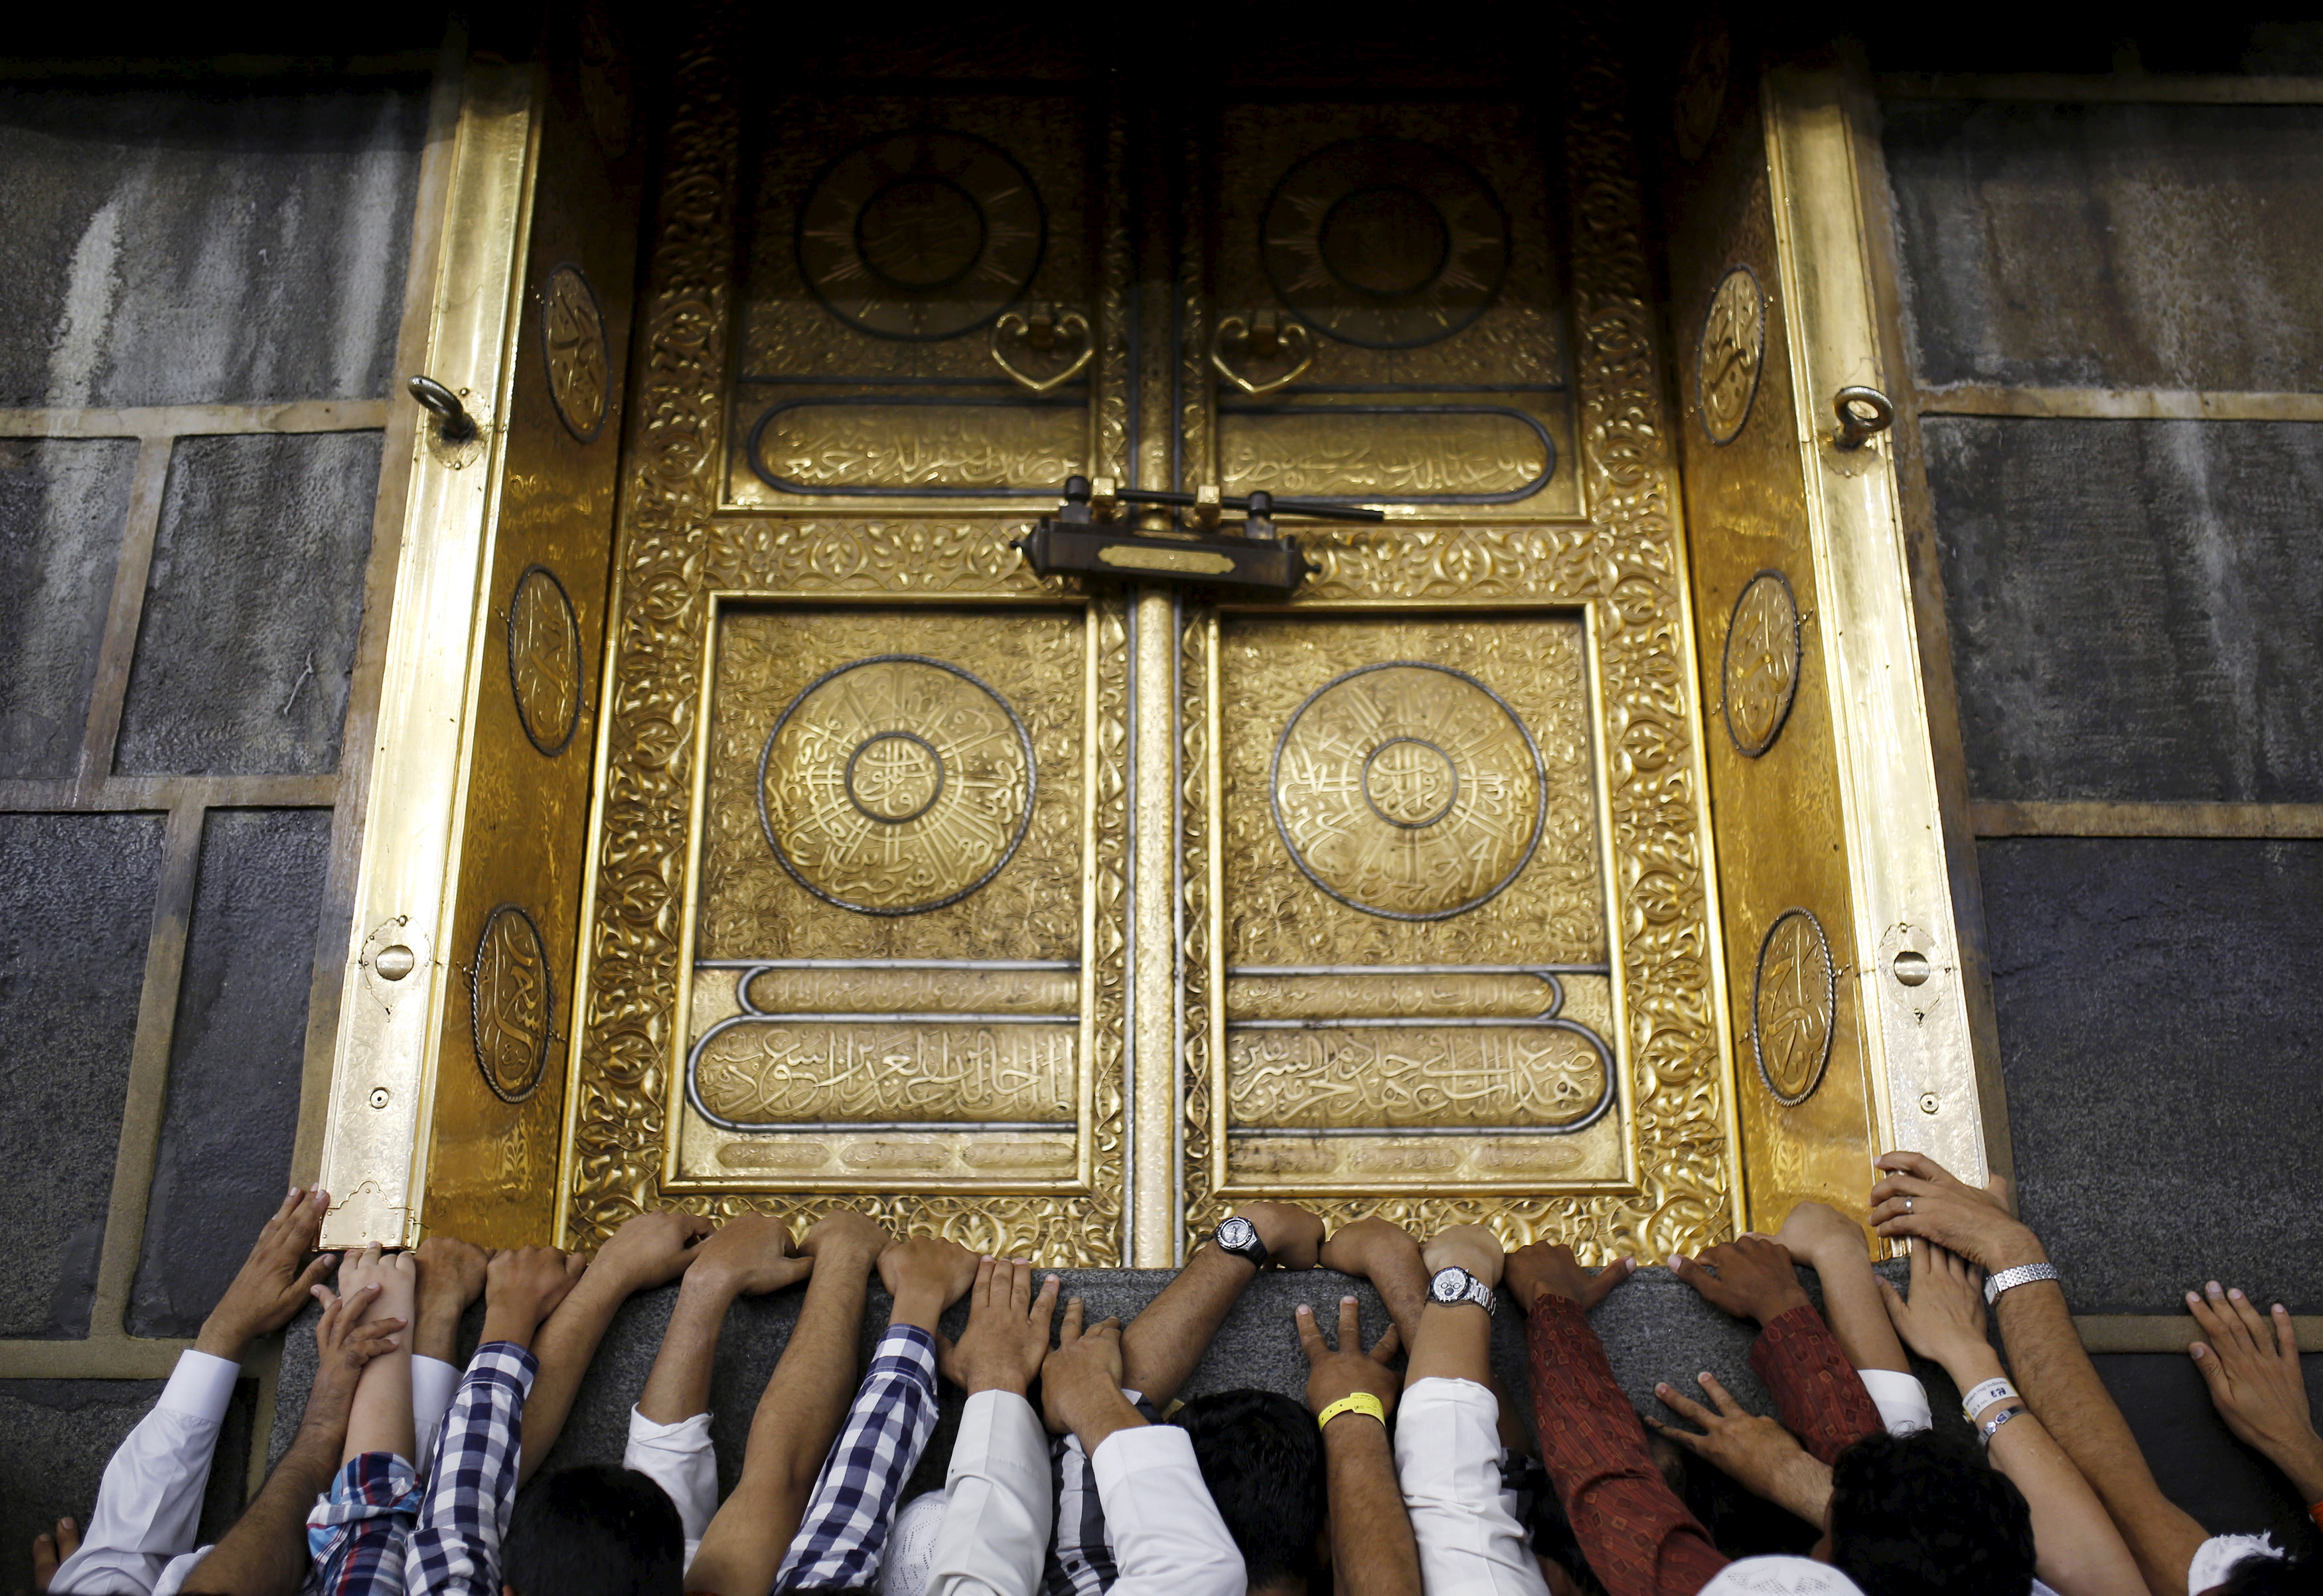 Muslim pilgrims touch the holy Kaaba at the Grand Mosque on the first day of Eid al-Adha during the annual hajj pilgrimage in Mecca, Saudi Arabia, on Sept. 24. Photo by Ahmad Masood/Reuters